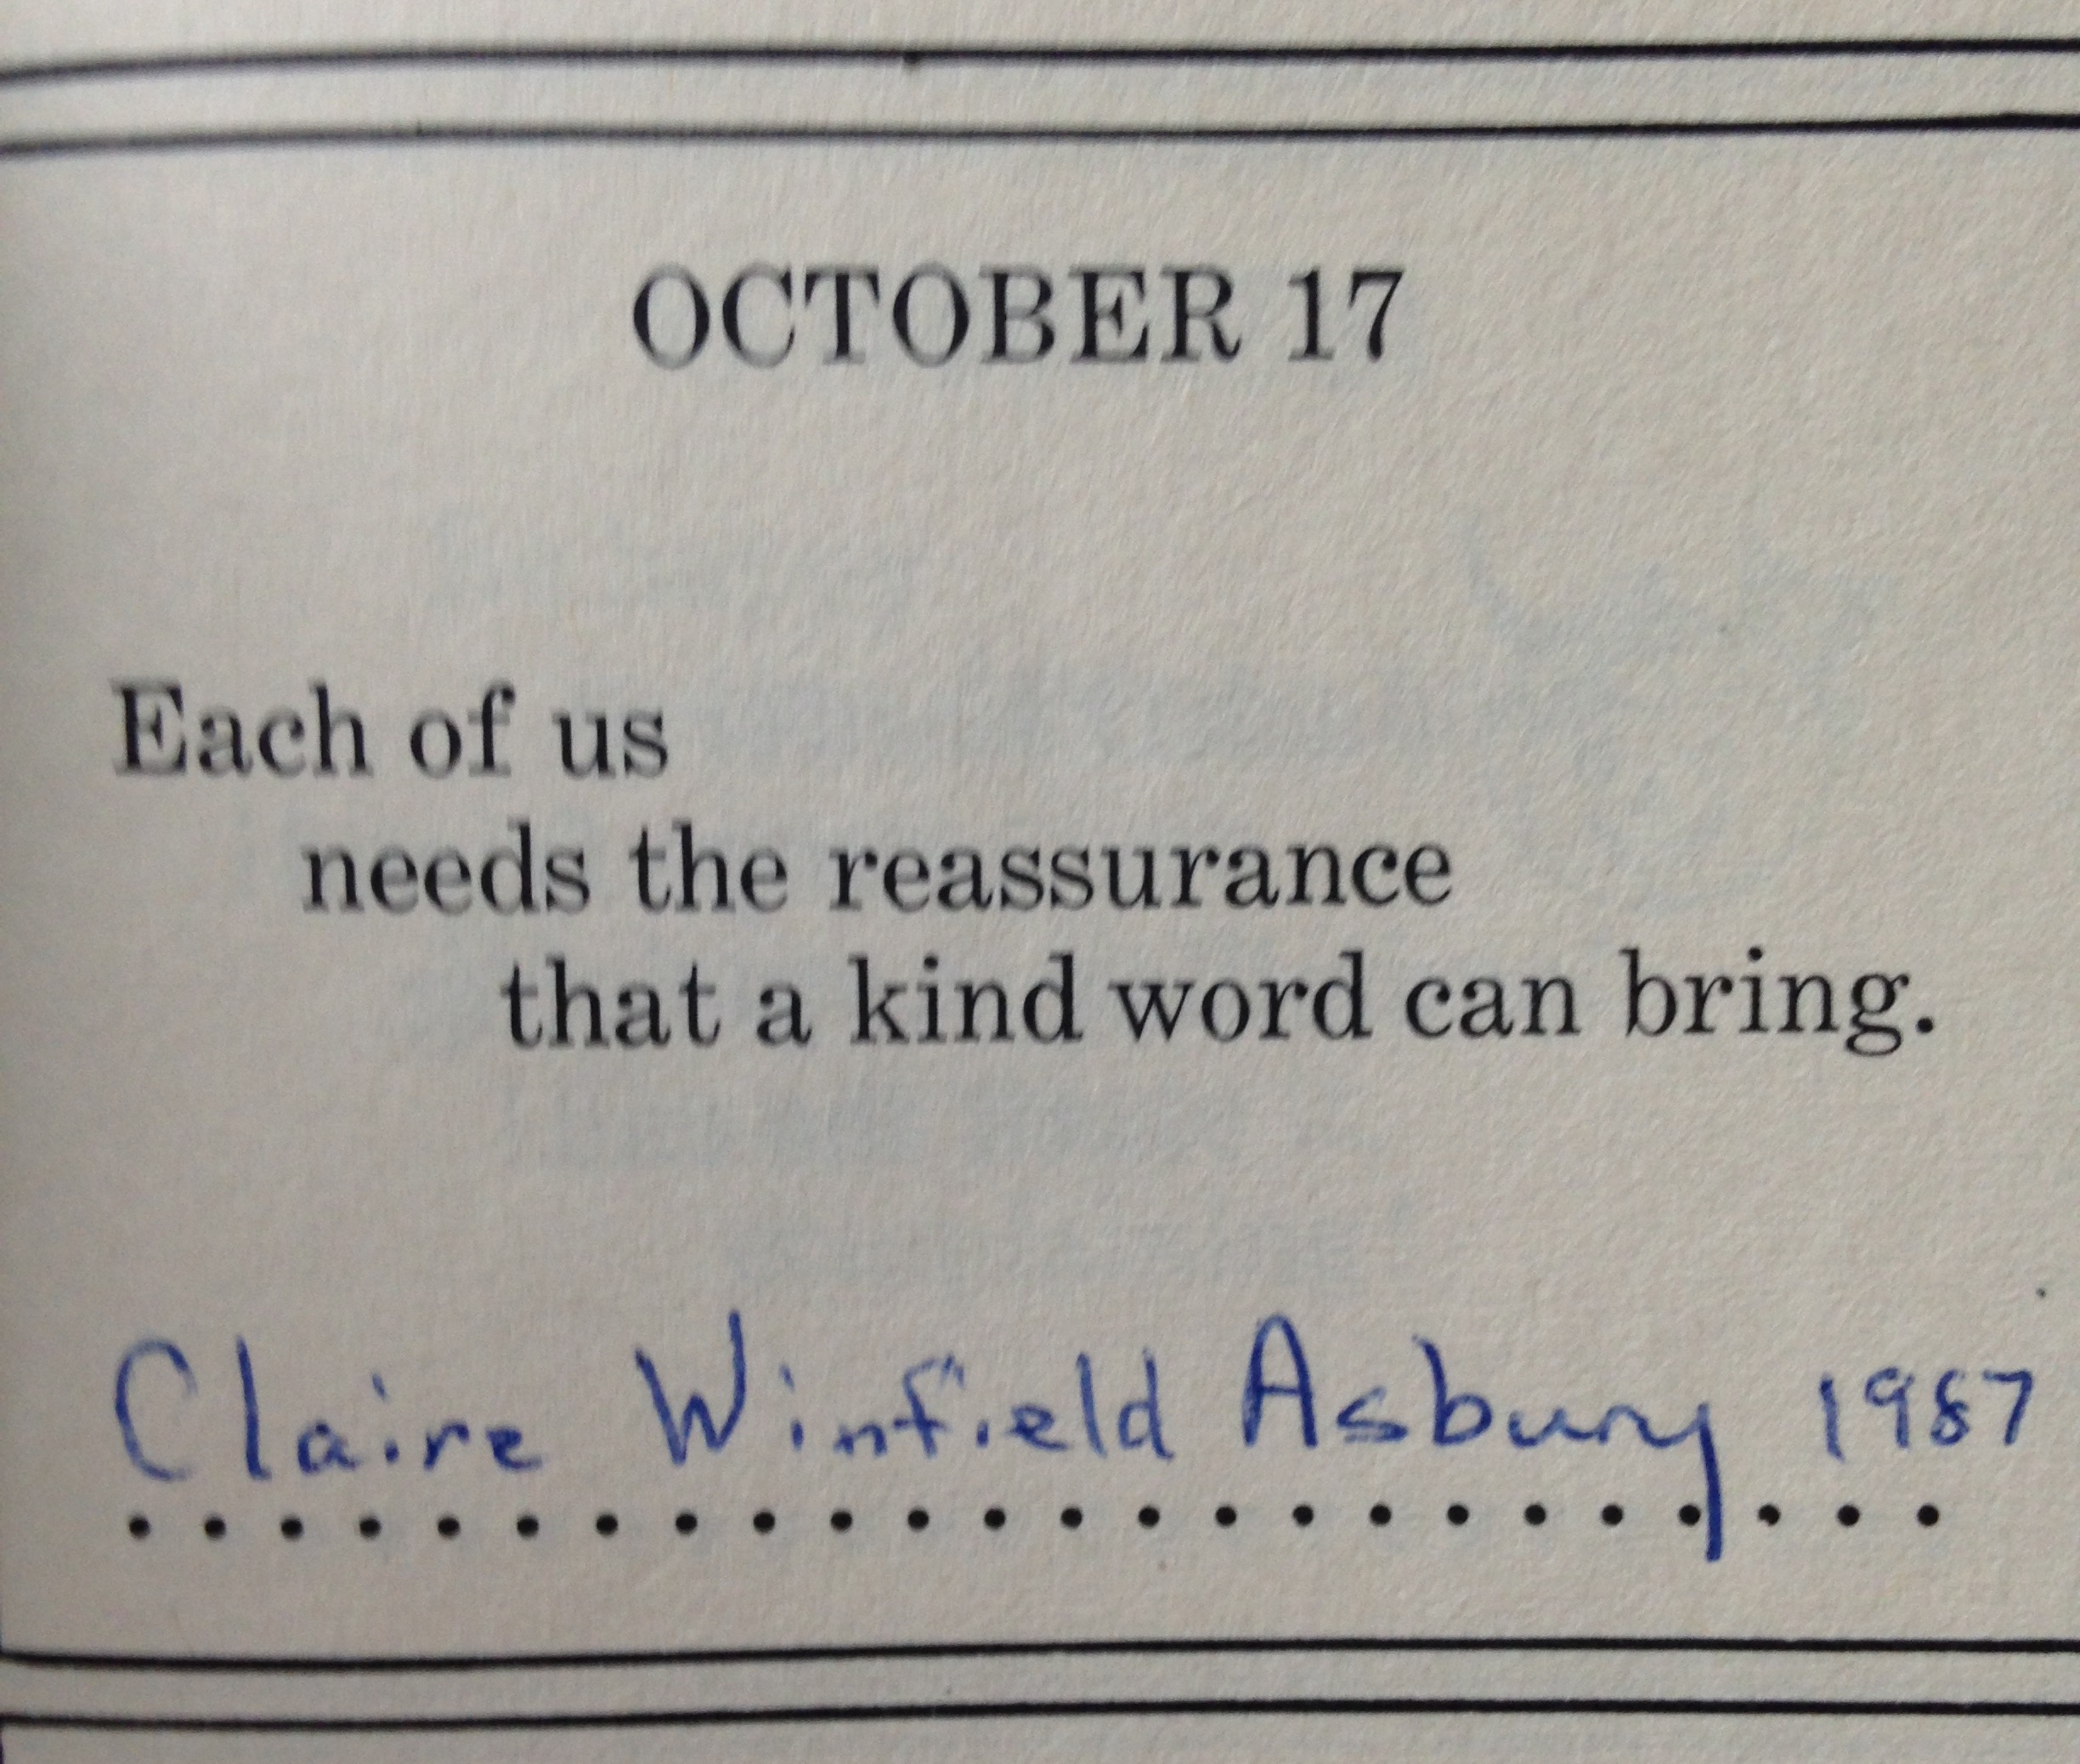 From my grandmother's birthday book.